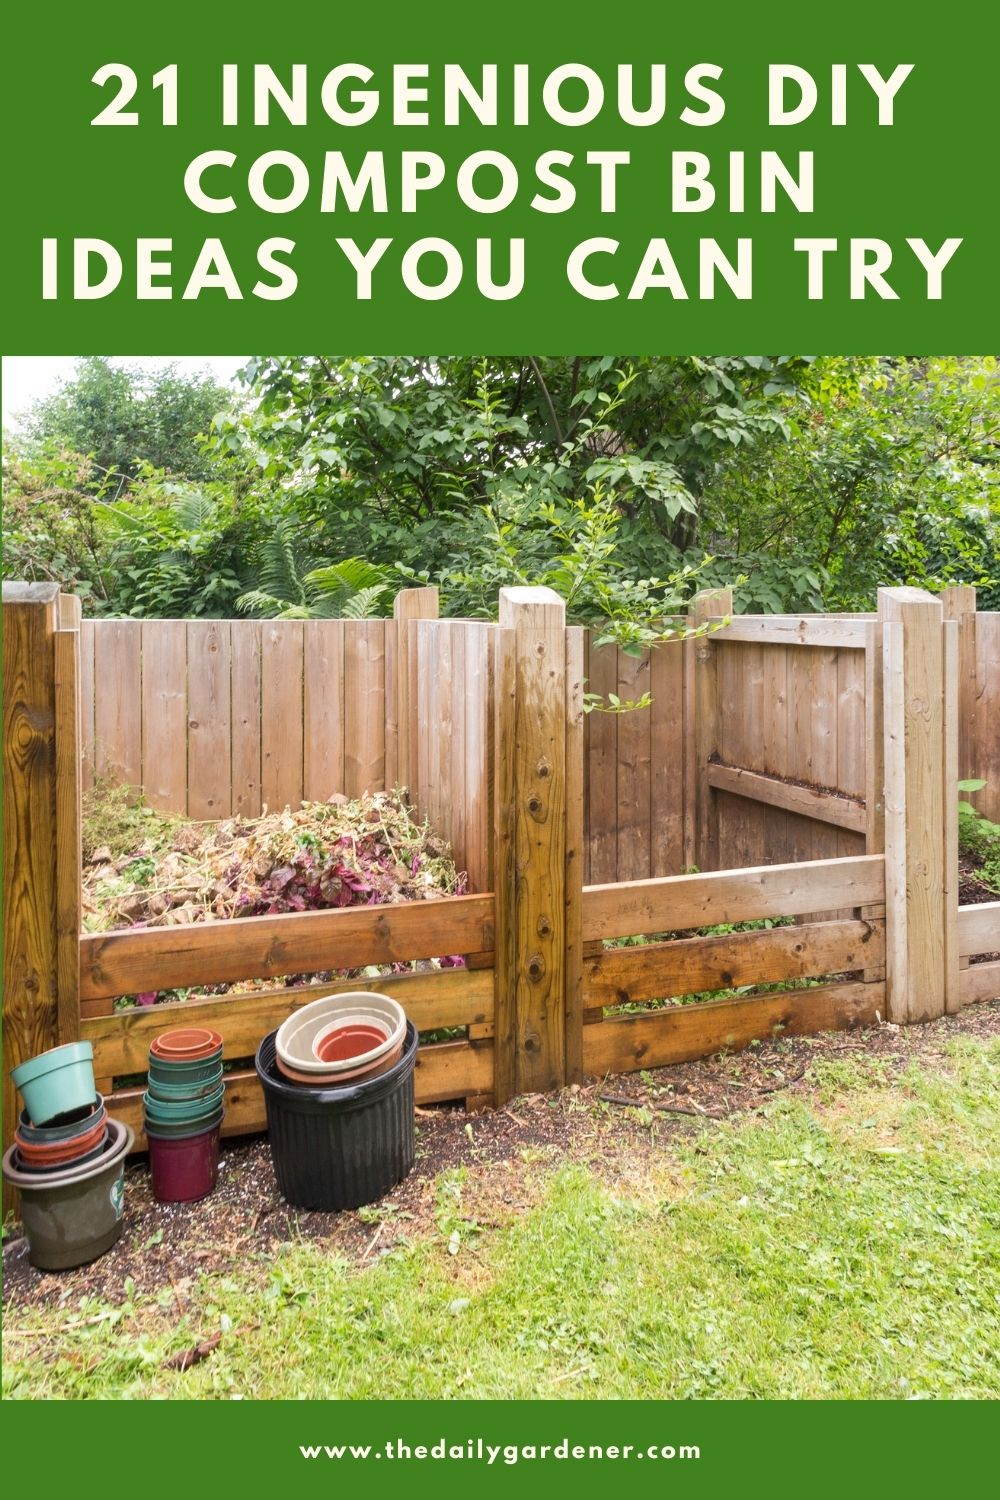 21 Ingenious DIY Compost Bin Ideas You can Try 2